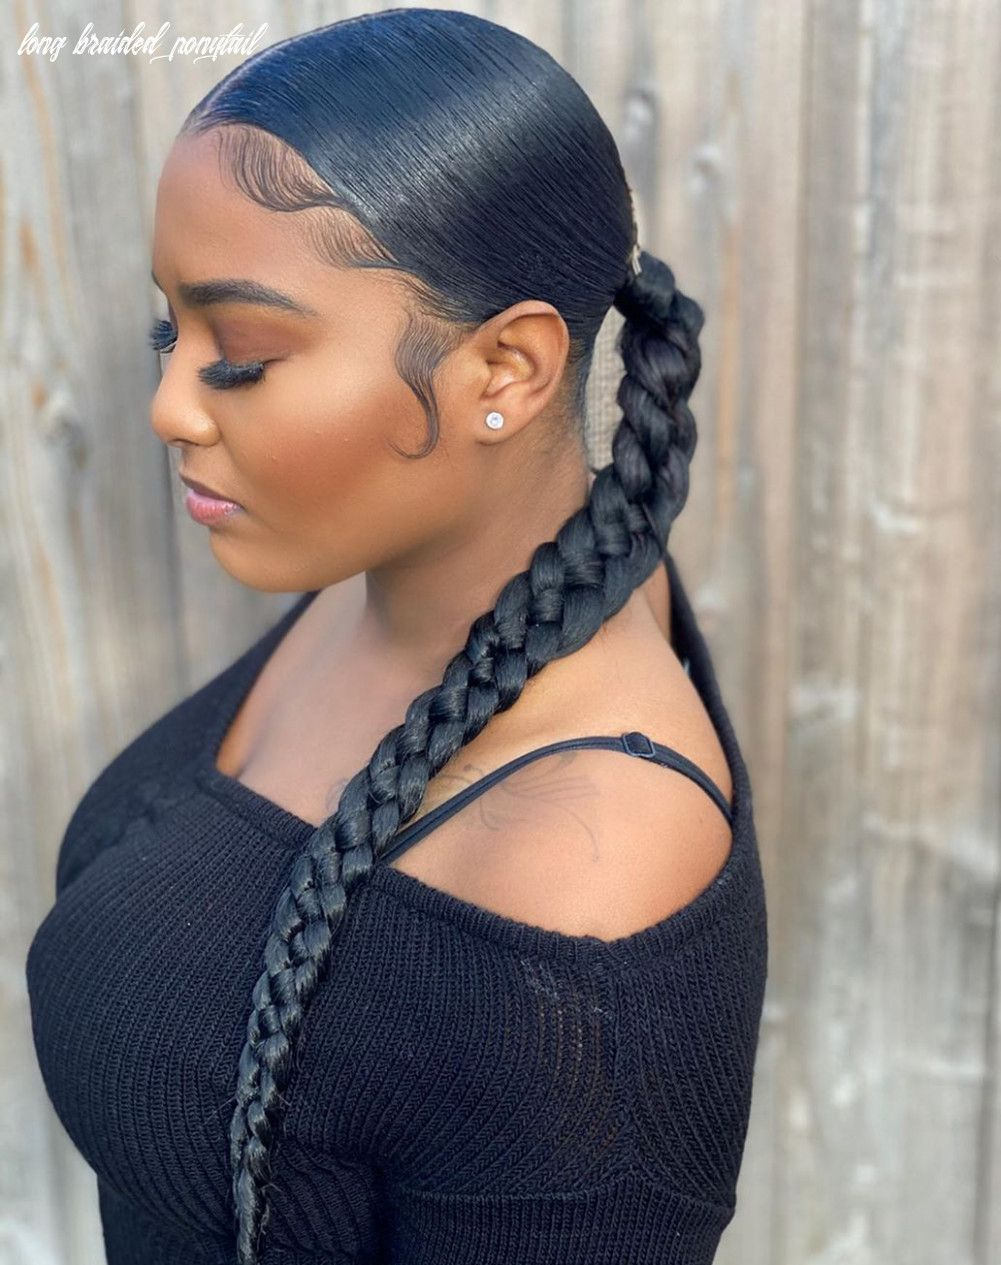 50++ Long braid ponytail with braiding hair inspirations